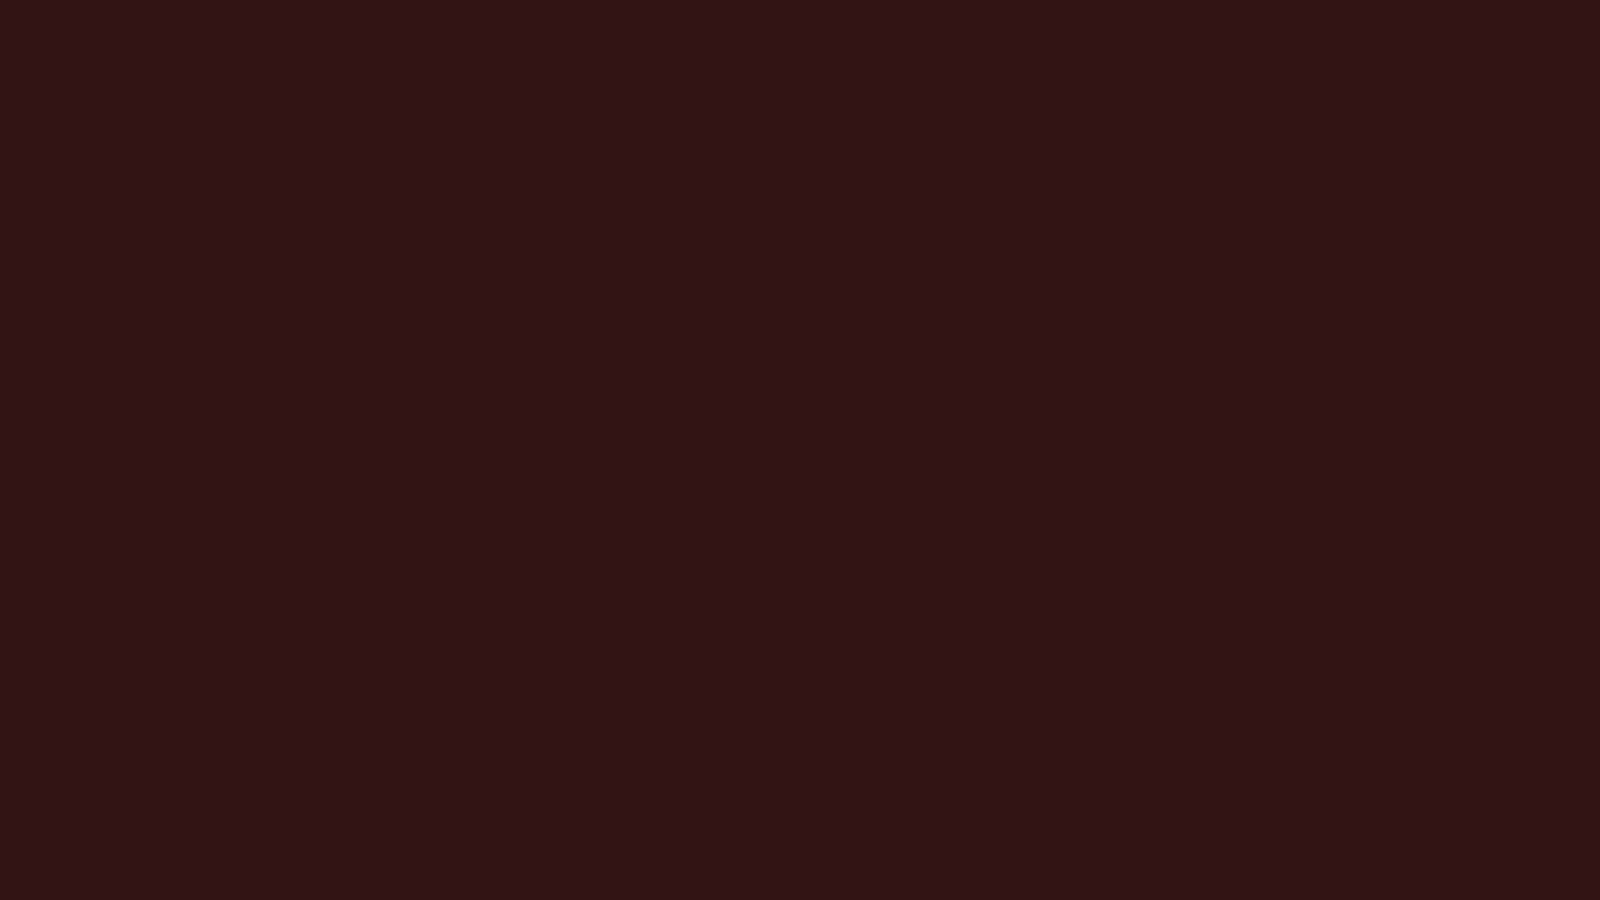 1600x900 Seal Brown Solid Color Background